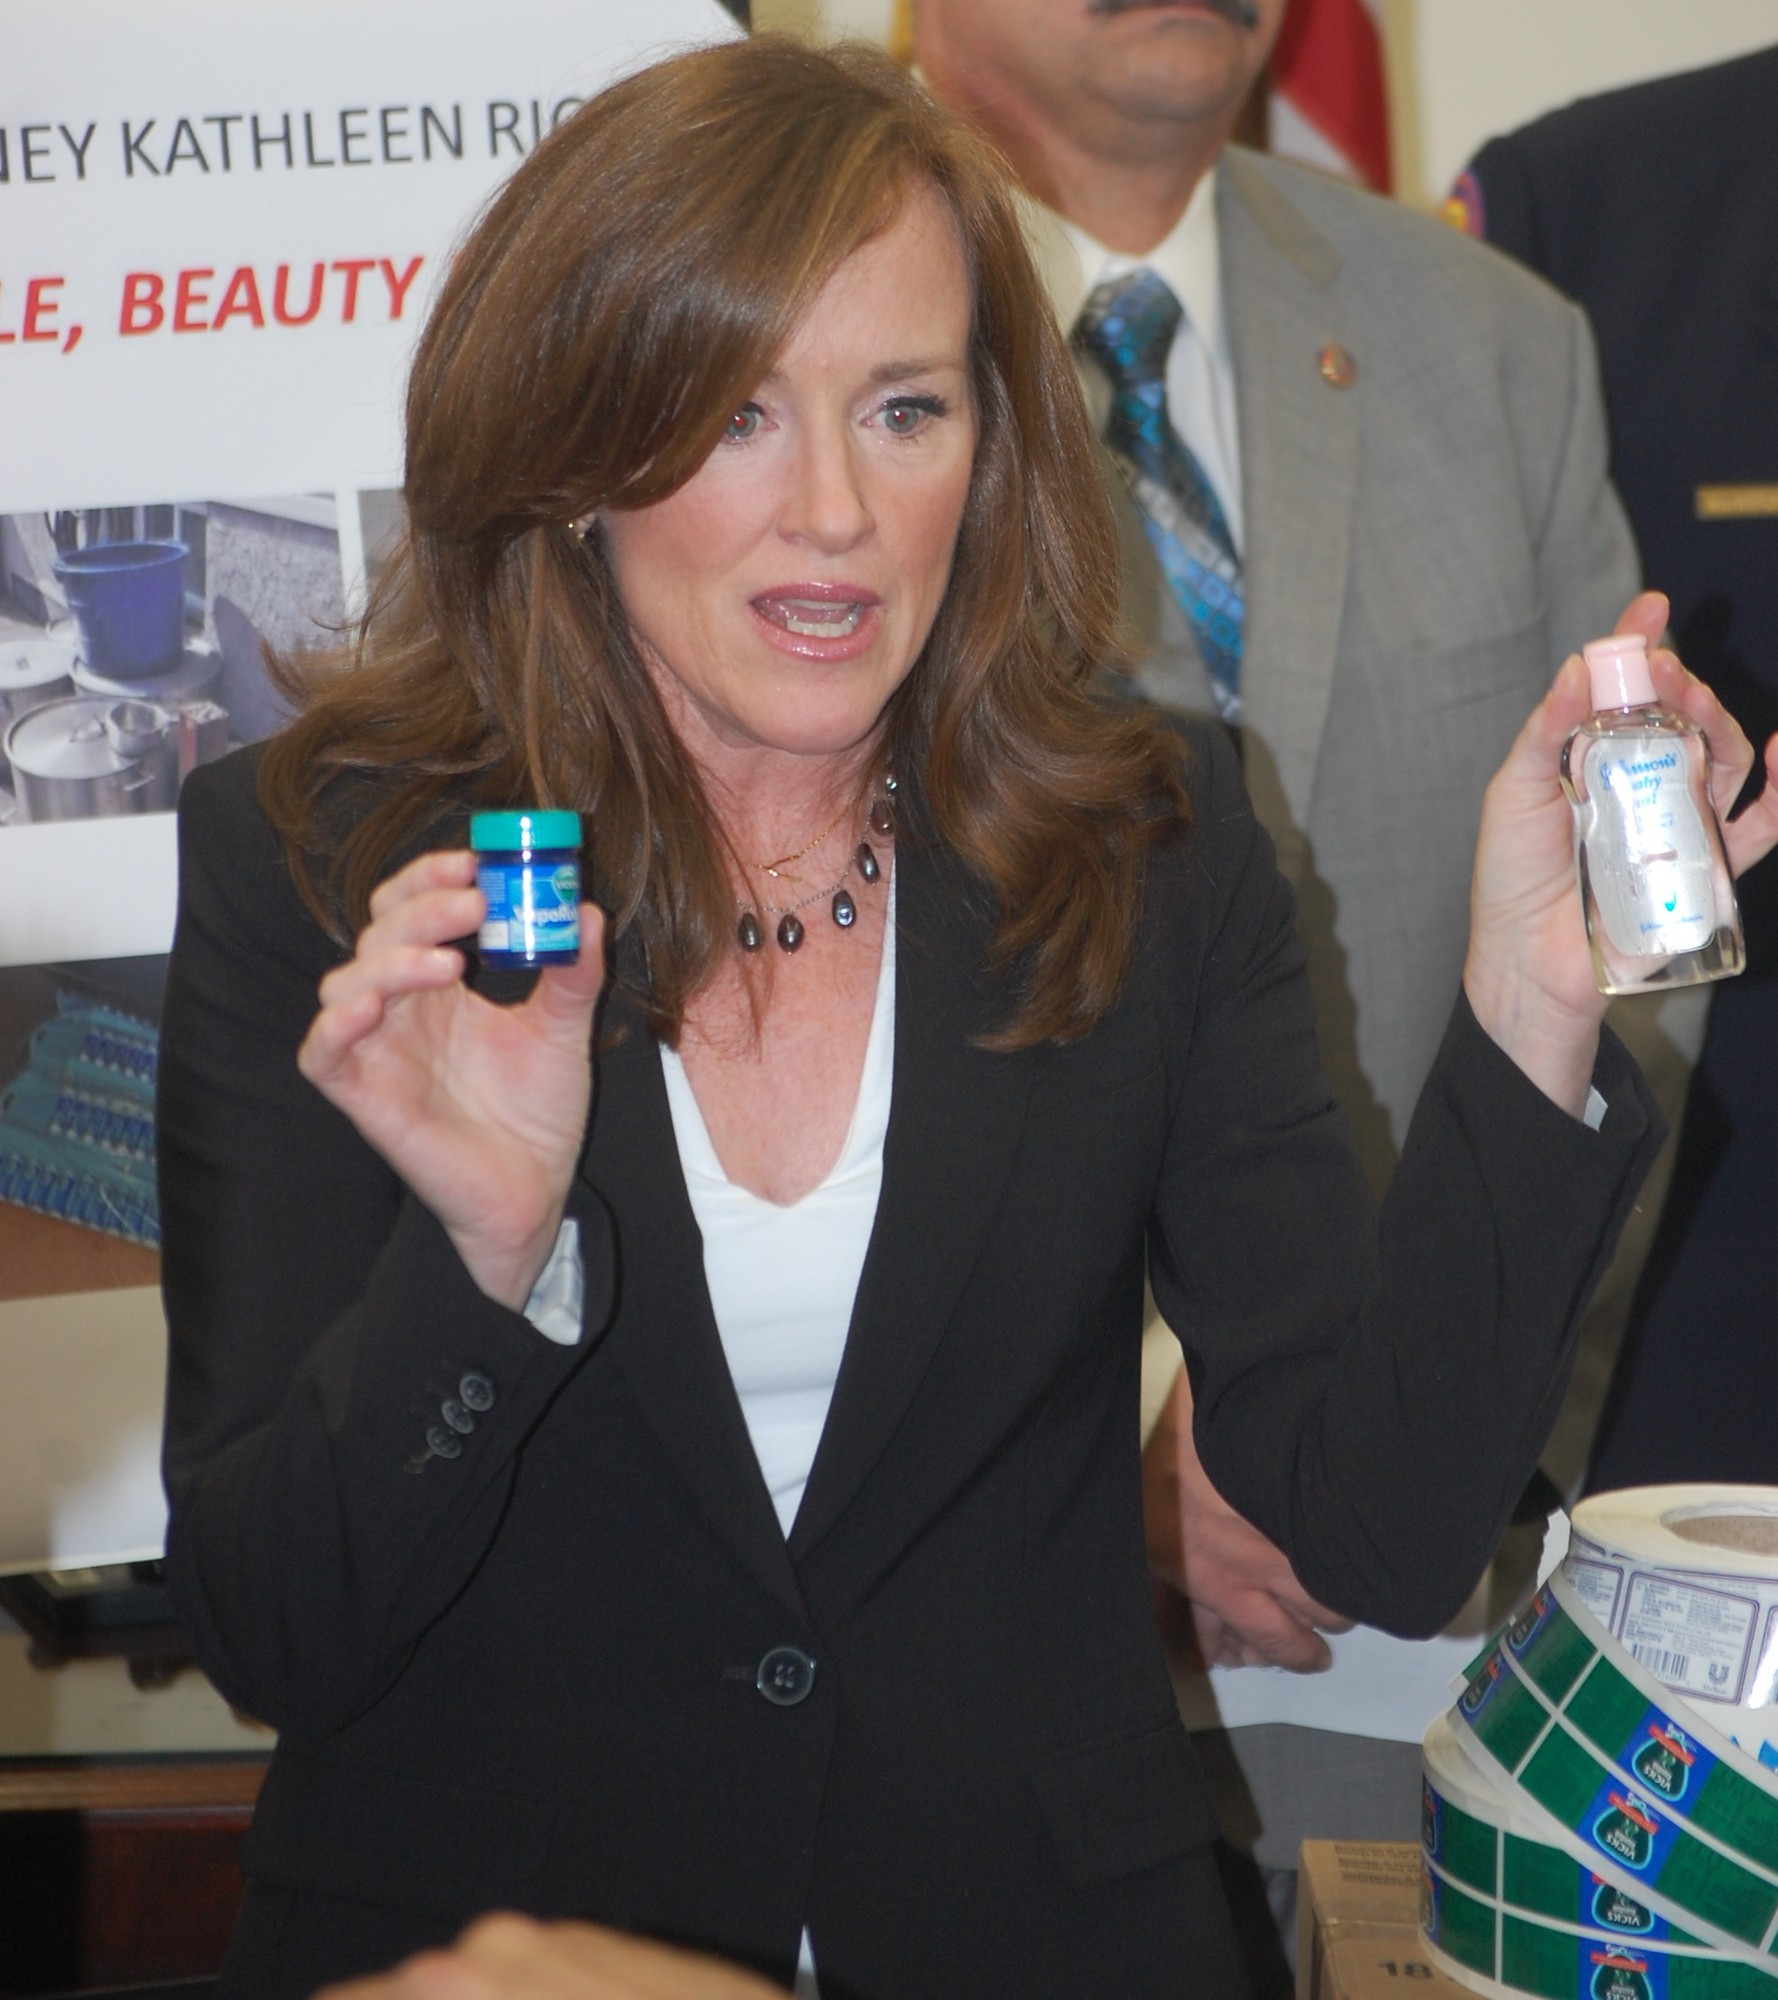 At the Nassau County Court House in Mineola, District Attorney Kathleen Rice showed the kinds of products the duo was counterfeiting.